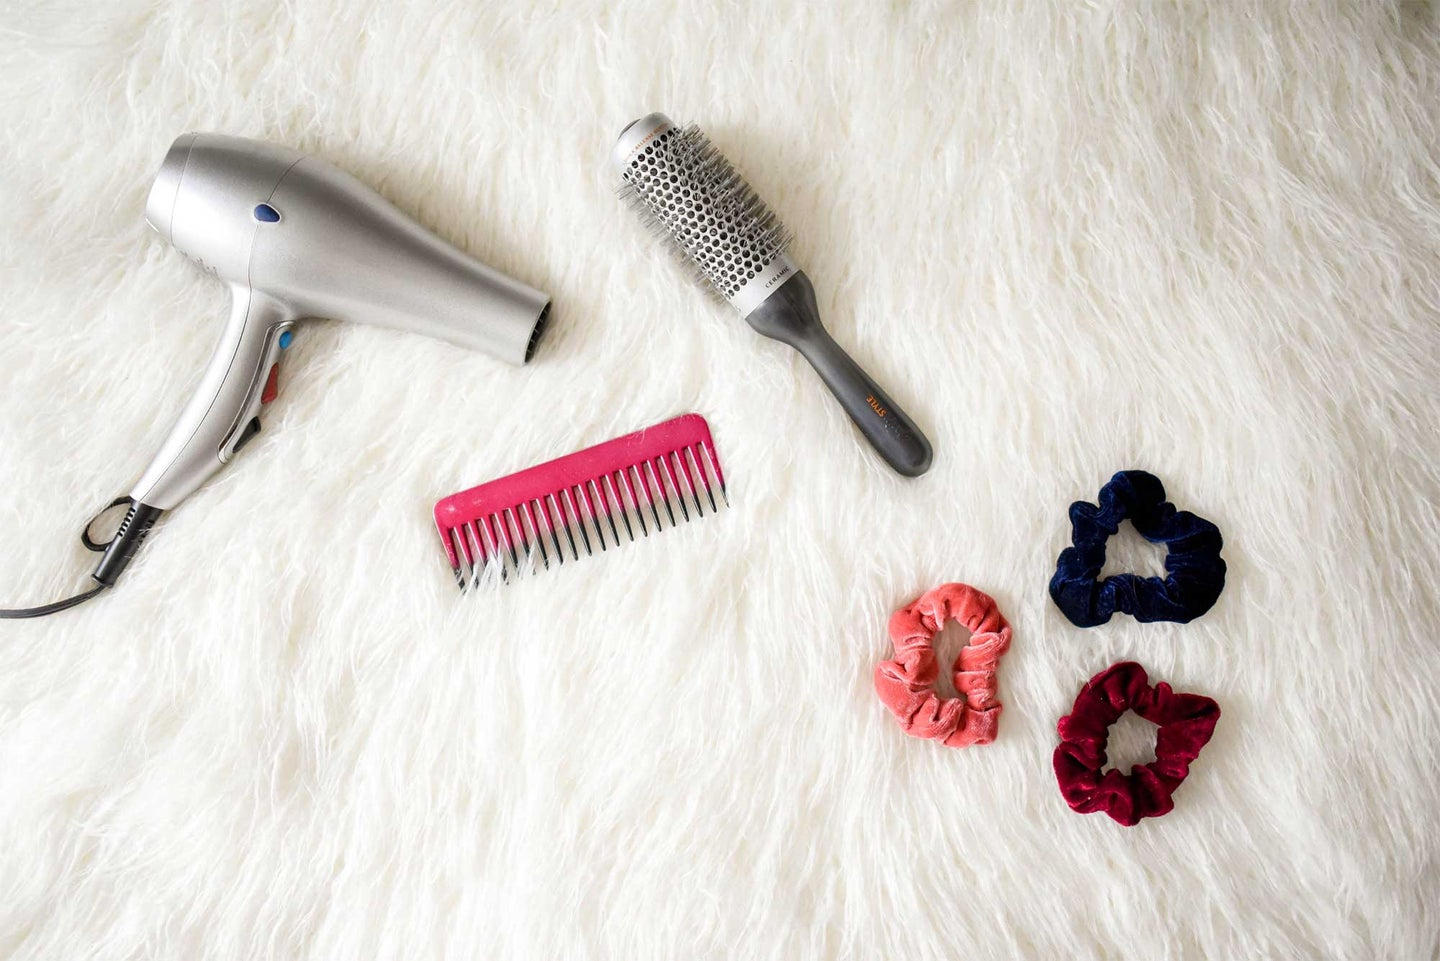 Hair dryer and scrunchies on a fur carpet